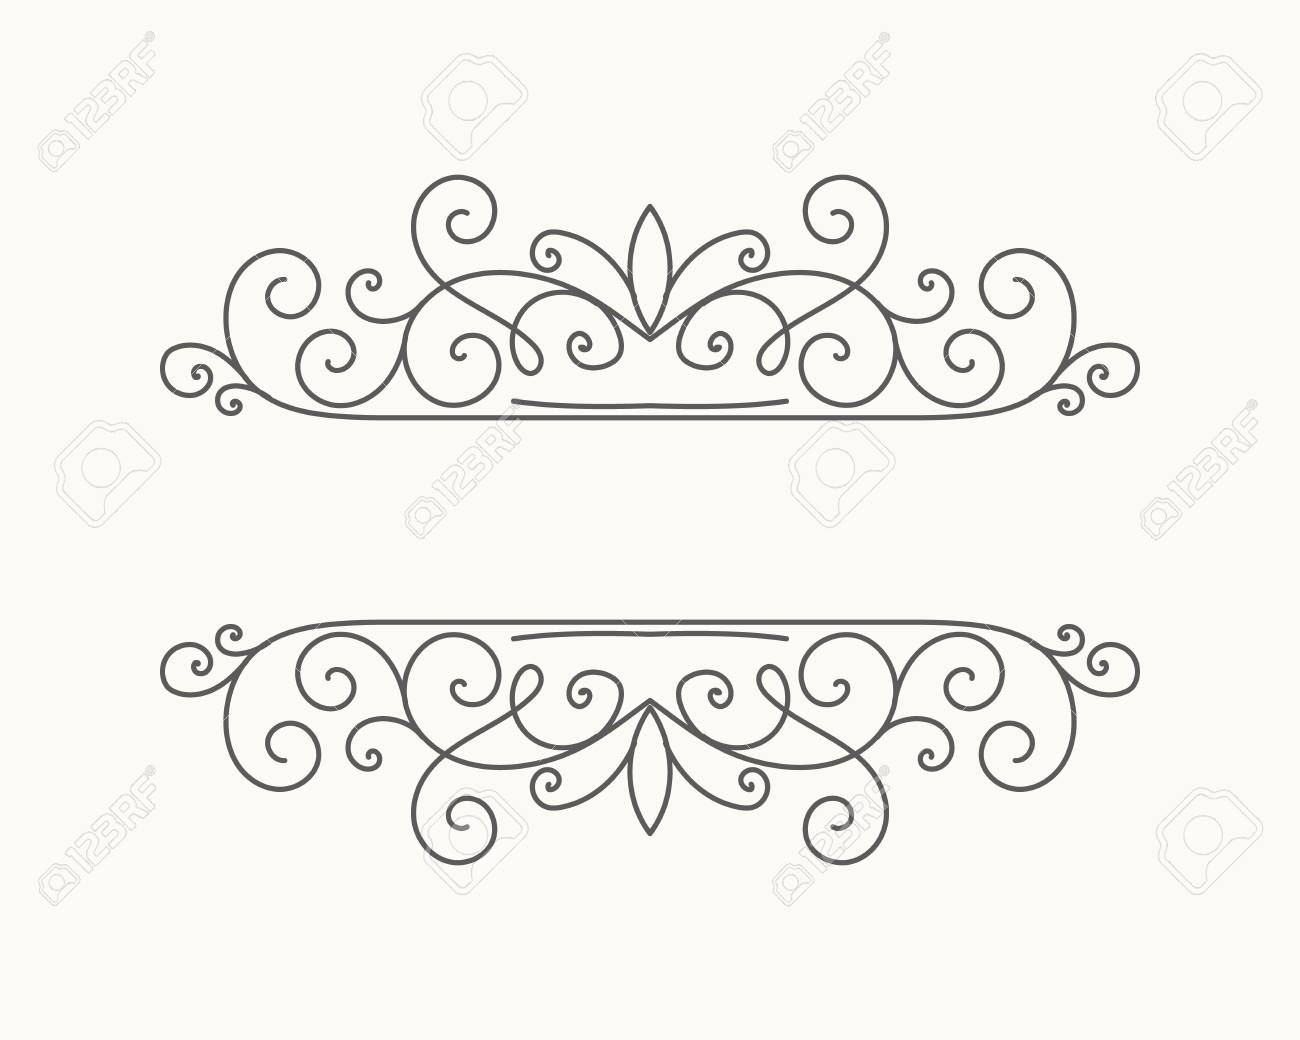 Hand drawn decorative border in retro style with editable stroke. Vintage calligraphic vignette or divider for greeting card, banner, party, wedding invitation, menu, postcard. Vector illustration. - 126749048